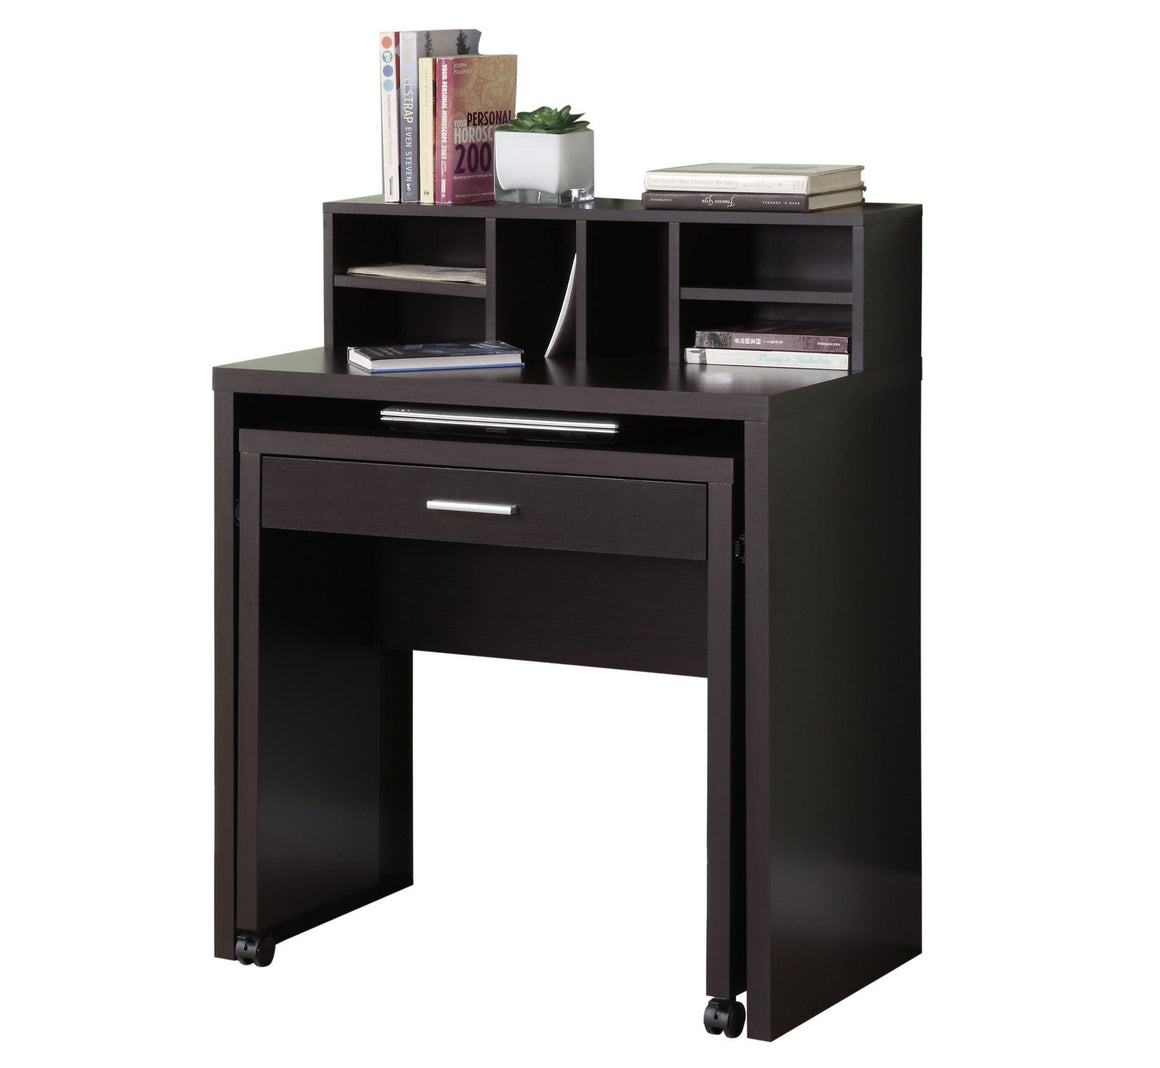 Cappuccino Spacesaver Computer Desk with Open Storage - TheOfficeFurnitureDepot